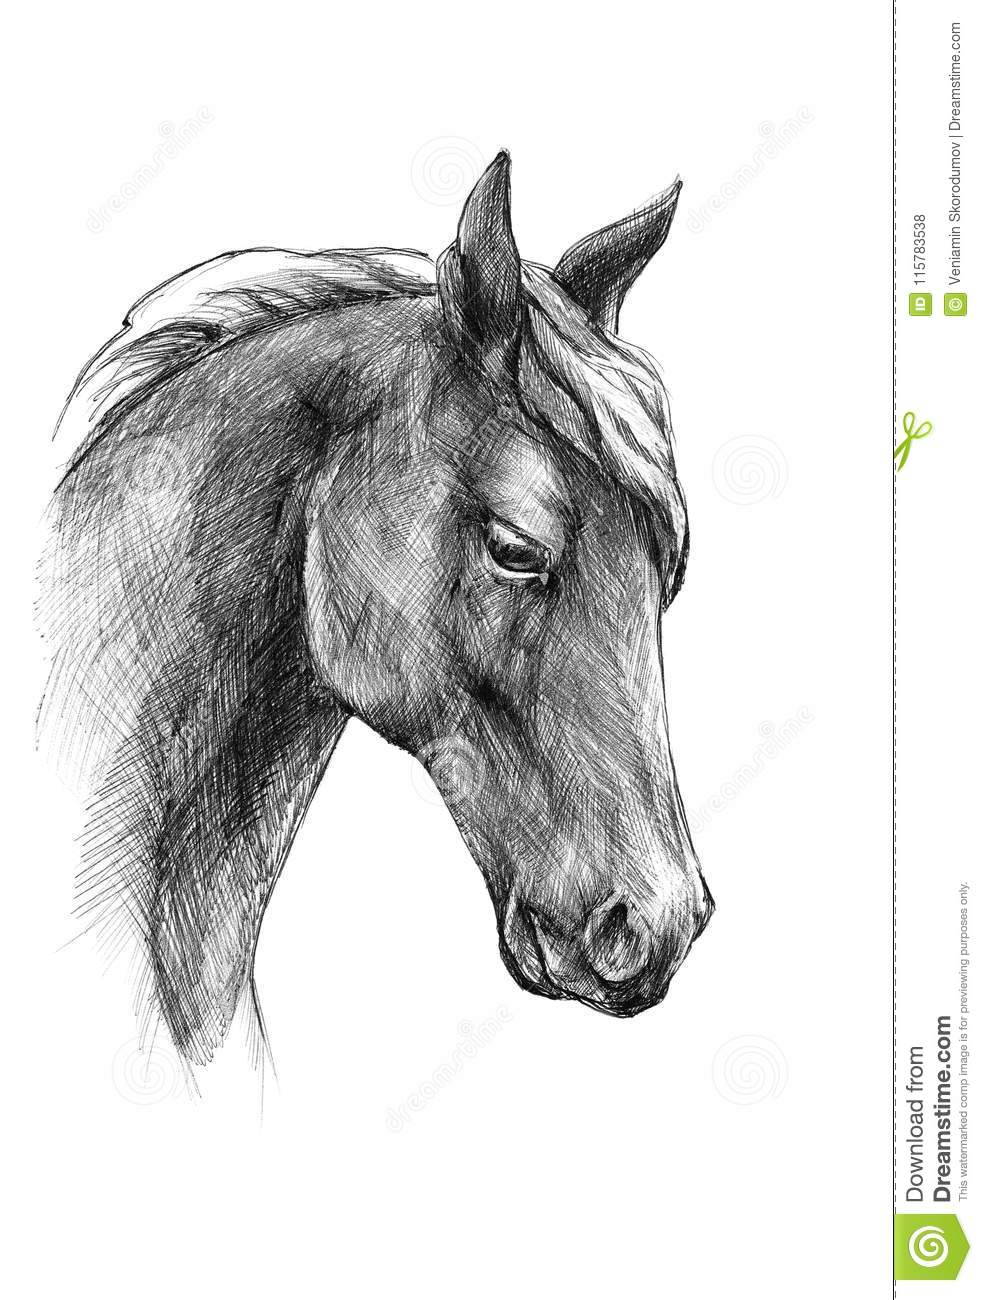 Sketch a horse head black and white drawing stock for Disegno di un cavallo da colorare